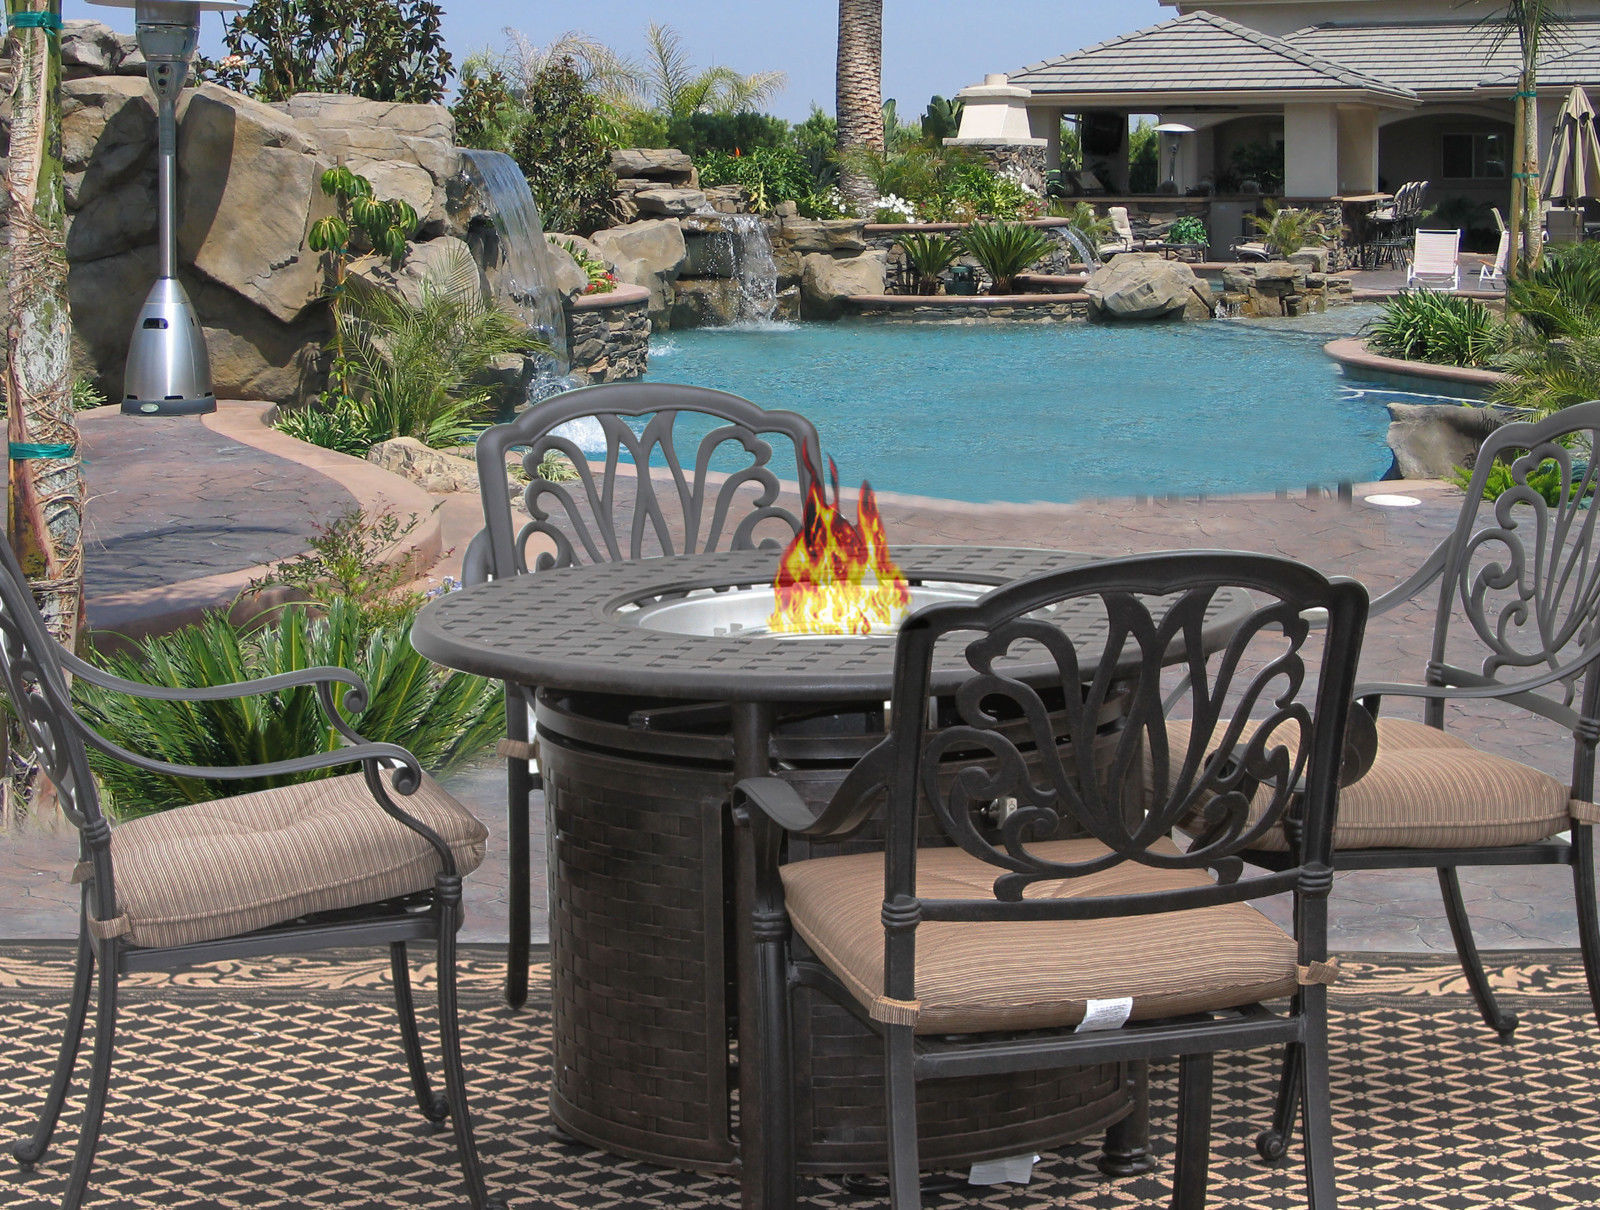 5 PC ELI OUTDOOR PATIO DINING SET FOR 4 PERSON WITH ROUND FIRE TABLE